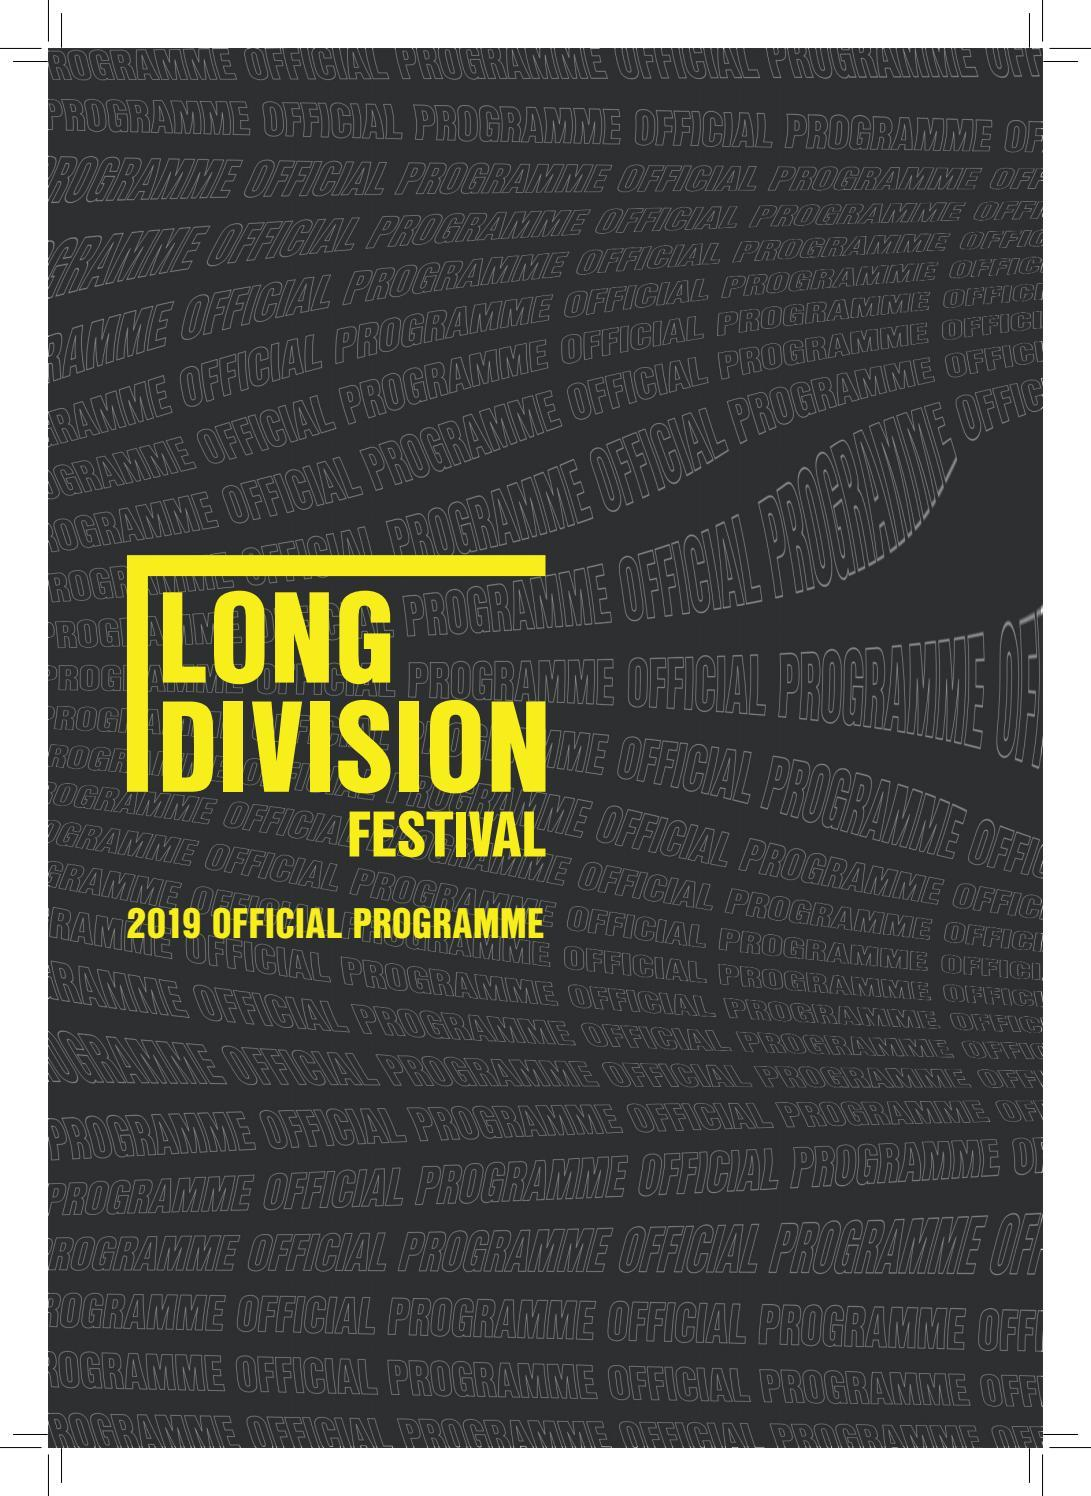 Long Division Festival 2019 Official Programme